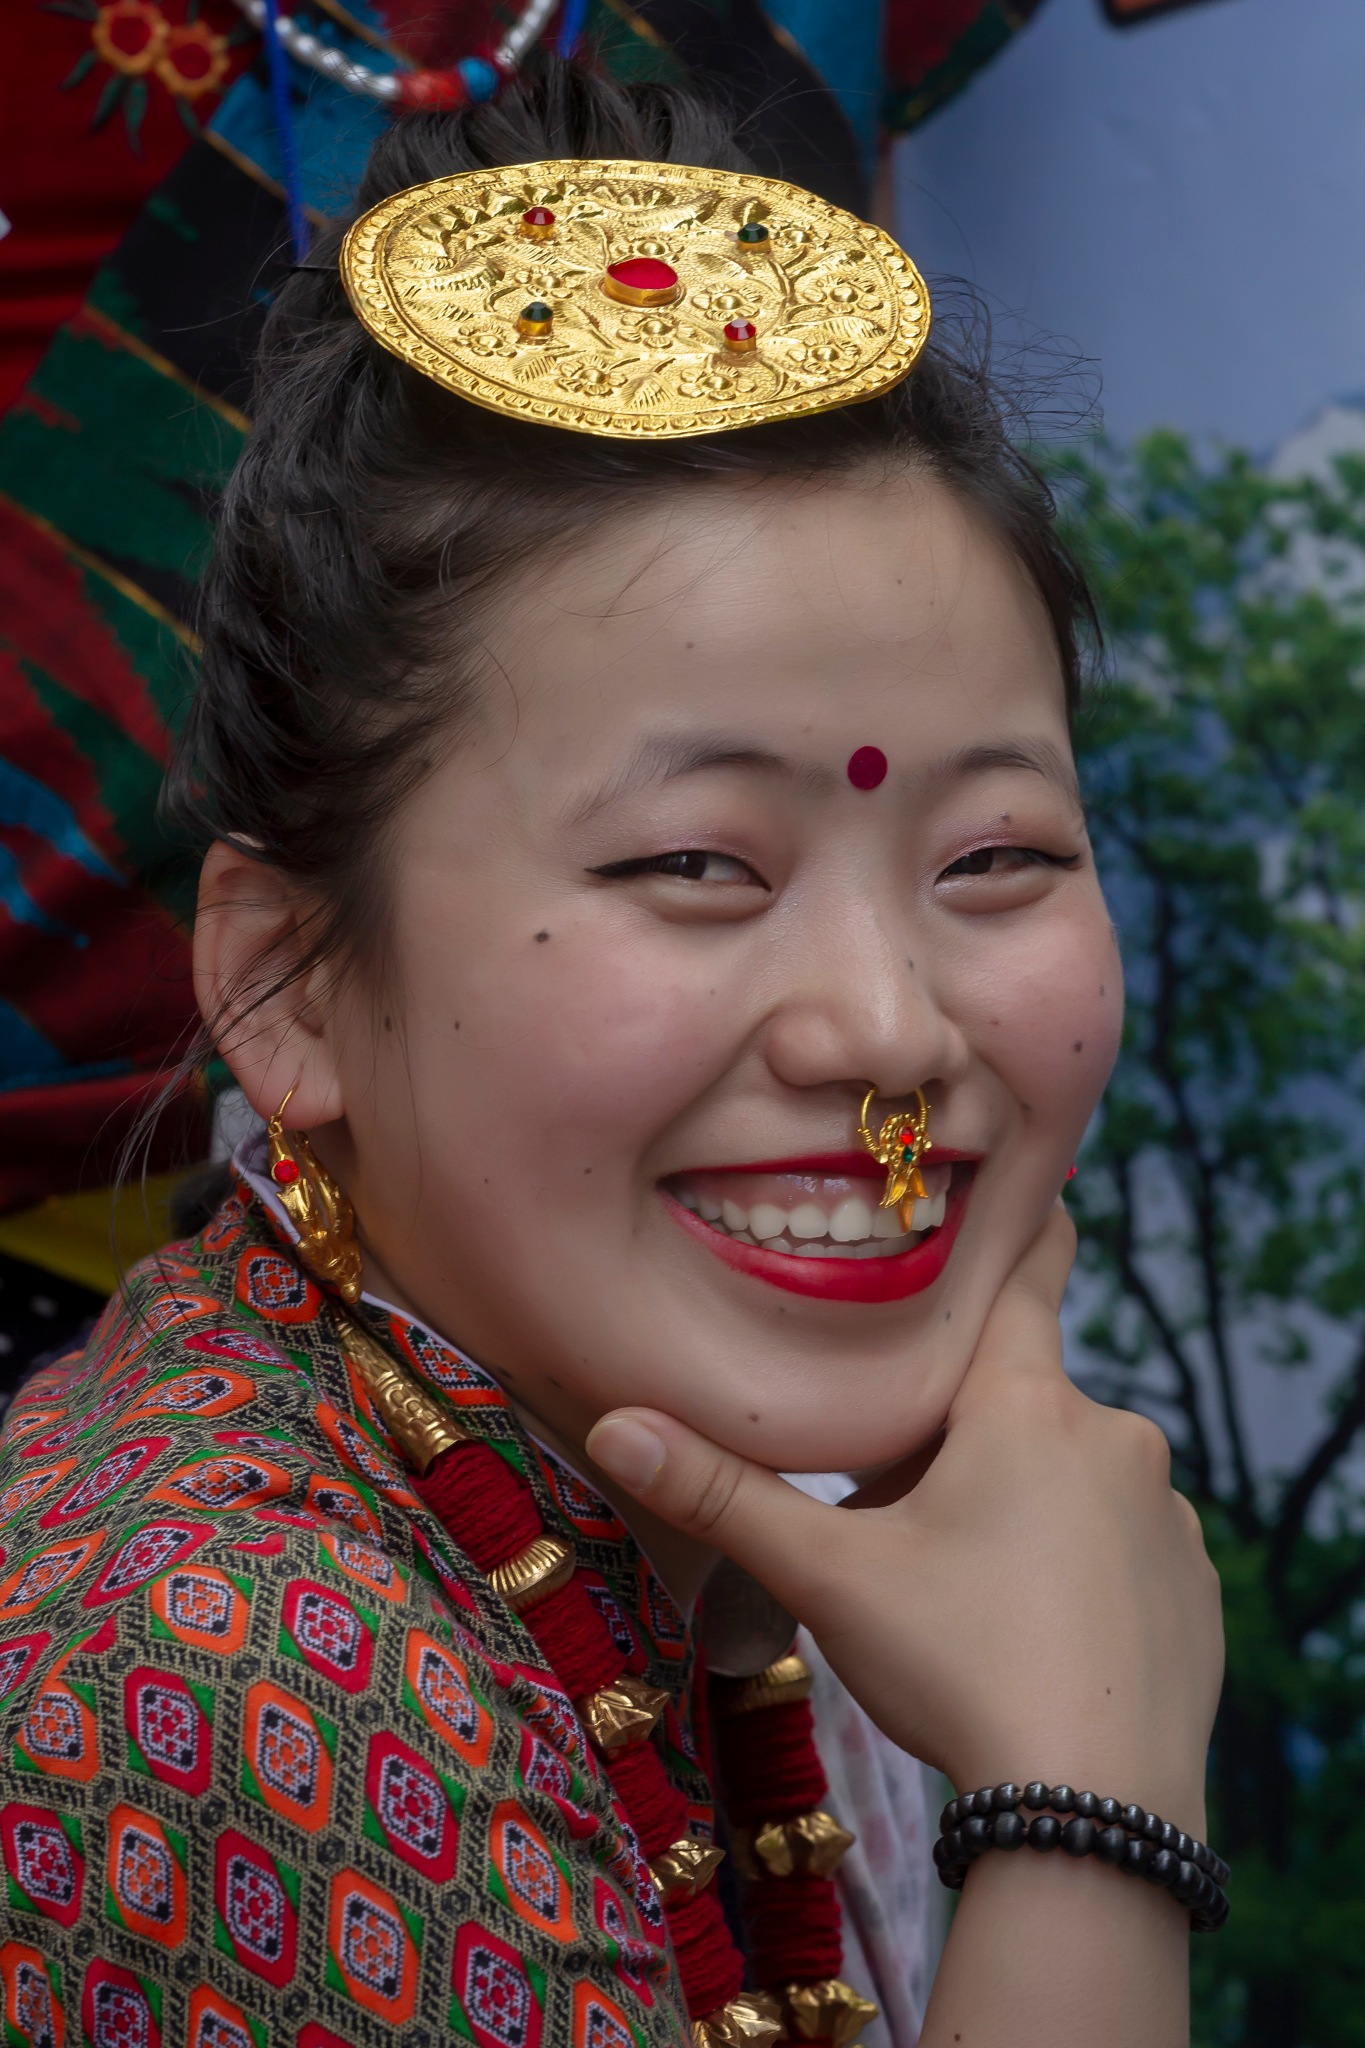 Nepal Day NYC 5_20_18 Woman in Traditional Attire by robertullmann